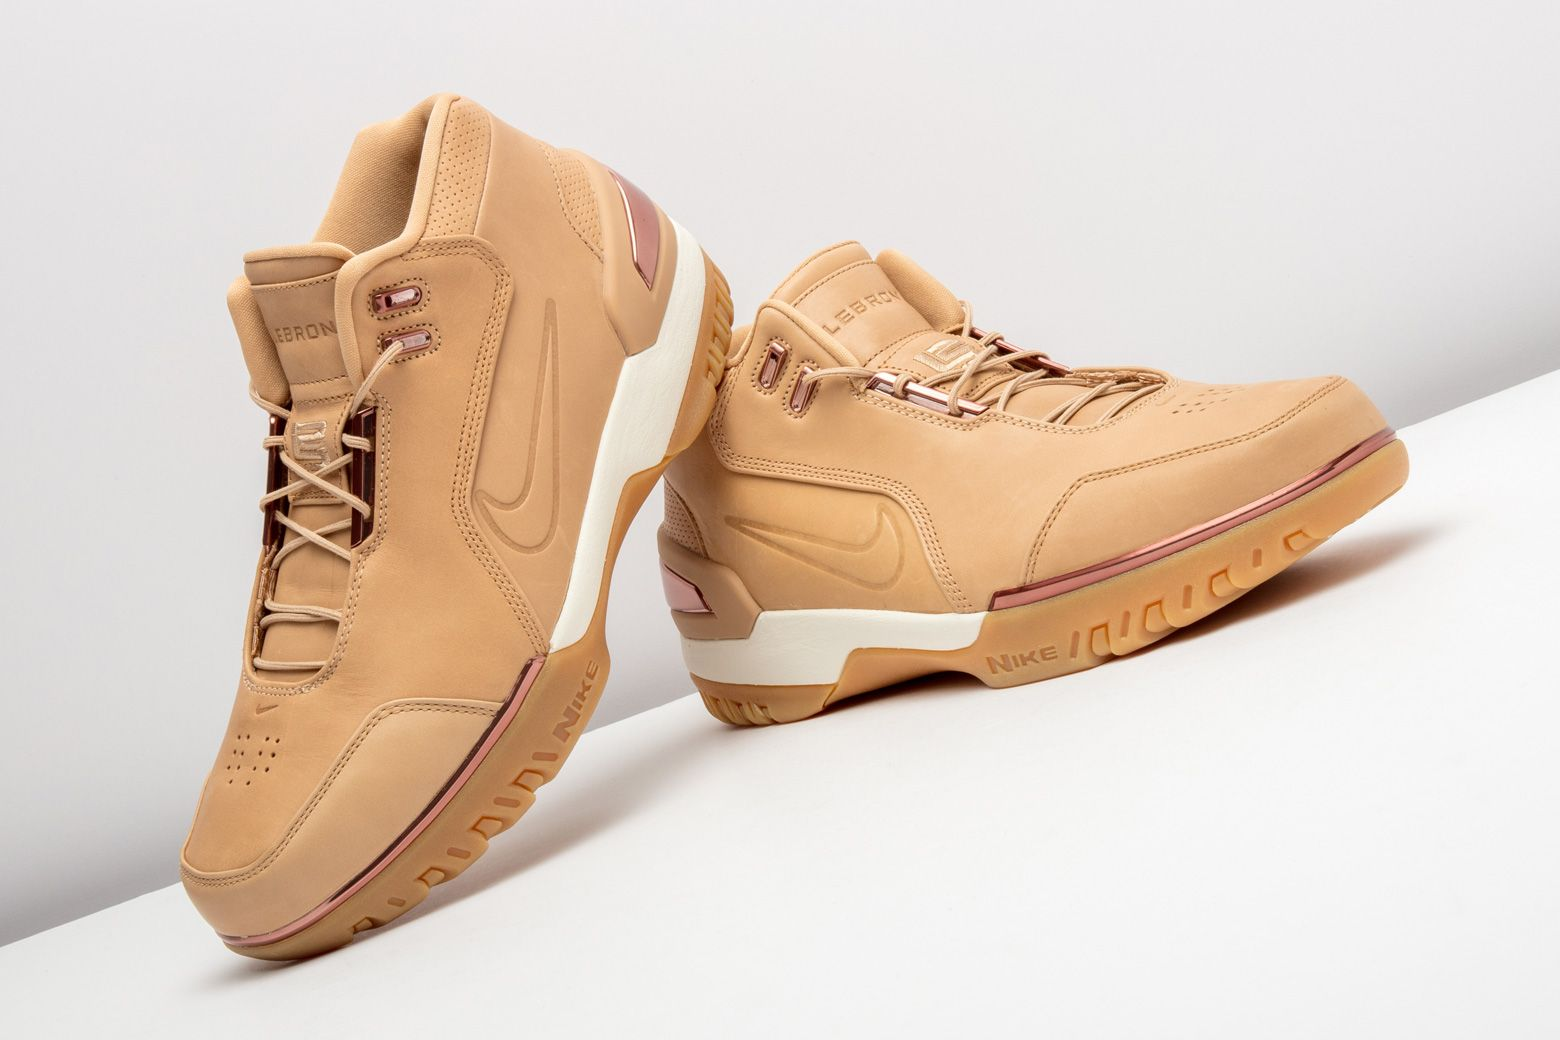 super popular 1e943 ae46f Vachetta Tan leather construction invades LeBron James  first signature shoe,  the Nike Air Zoom Generation.  Nike